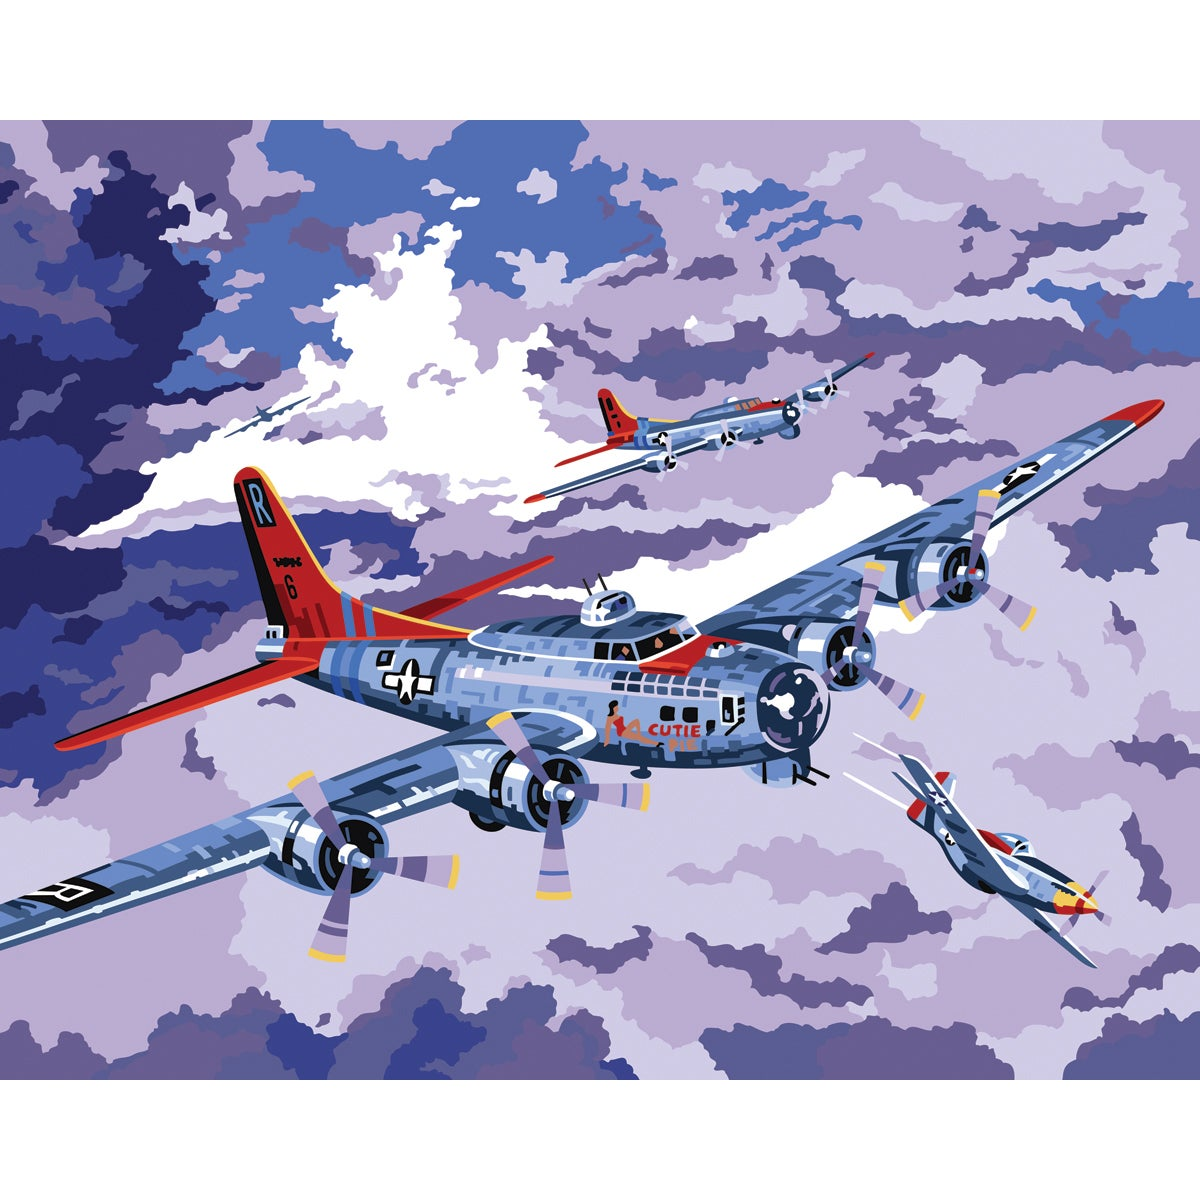 Plaid B-17 Bomber Paint-by-Number Kit (16x20)